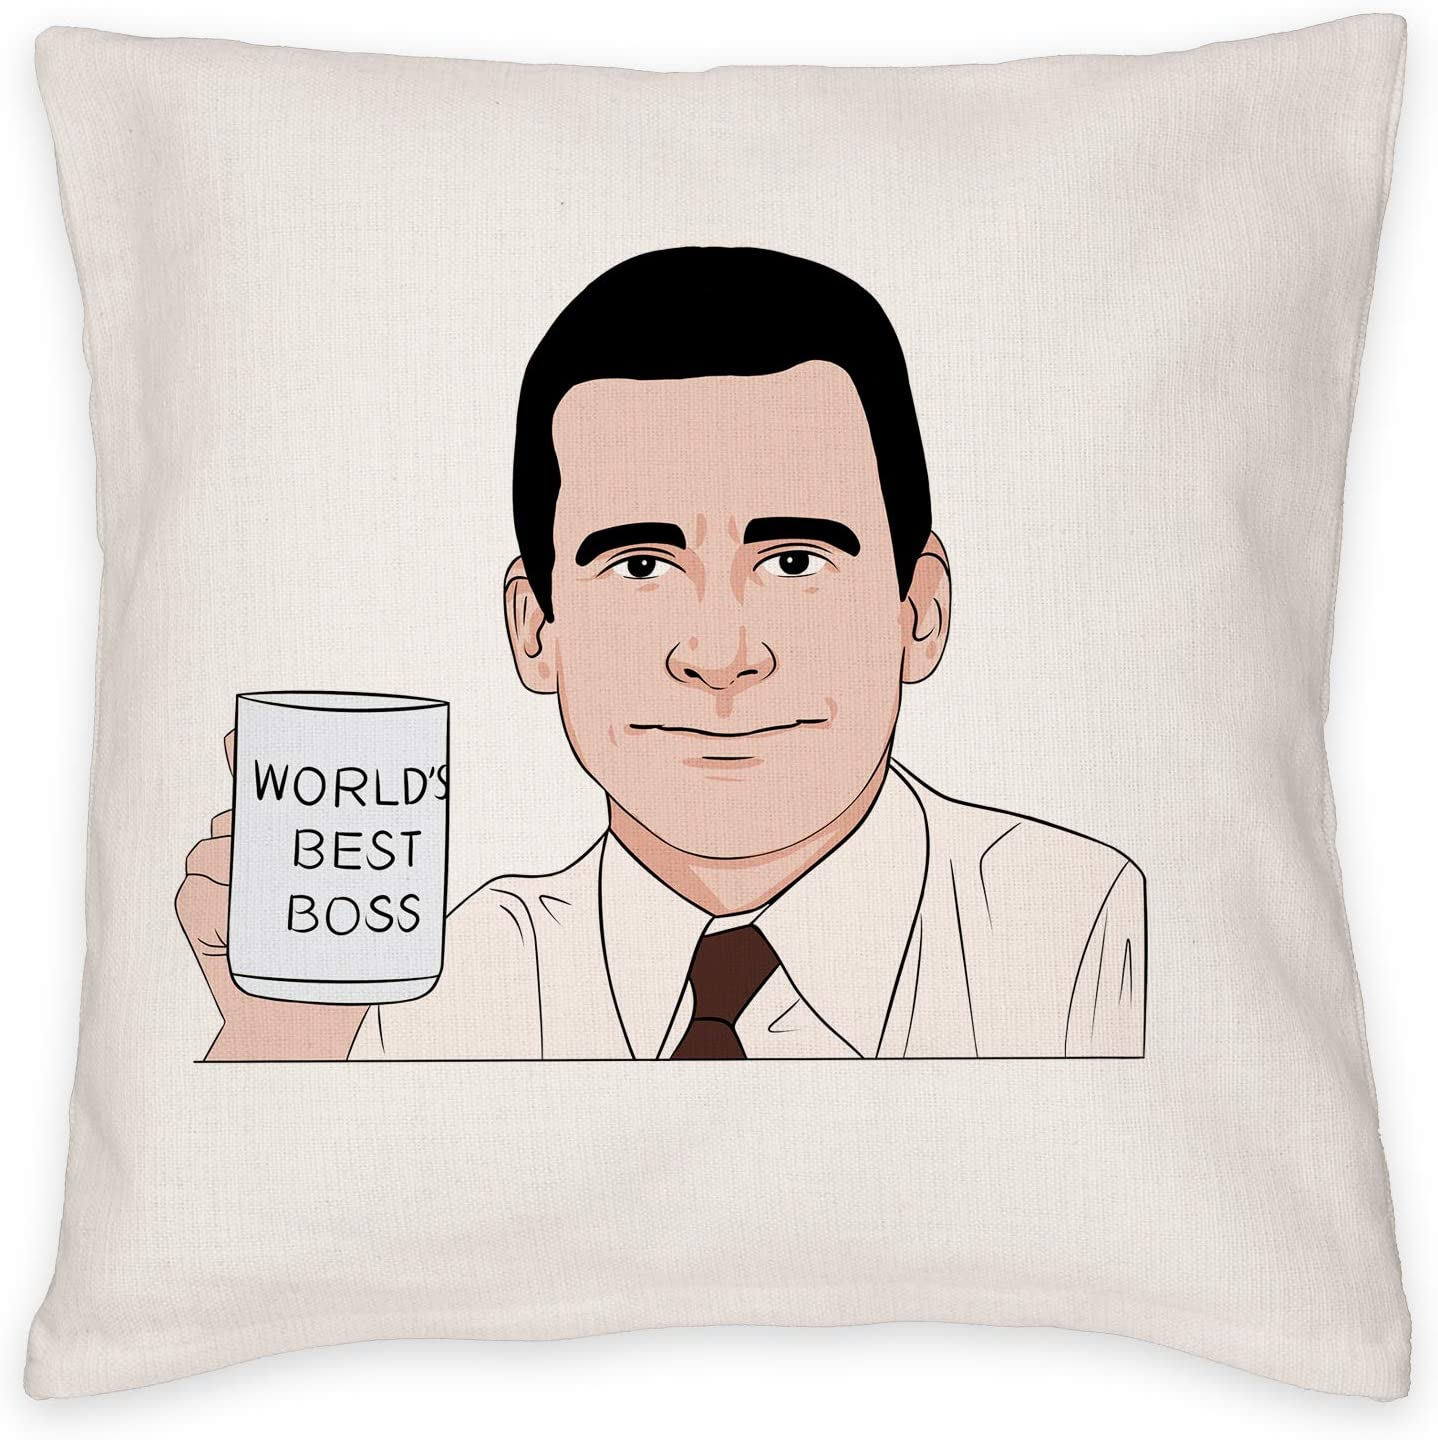 MTWXH Throw Pillow Case, The Office Michael Scott World's Best Boss 18x18 Inch Decorate Pillow Cover, The Office Merchandise Cushion Cover for Home & Office Decor, Decoration Gifts for TV Show Fans